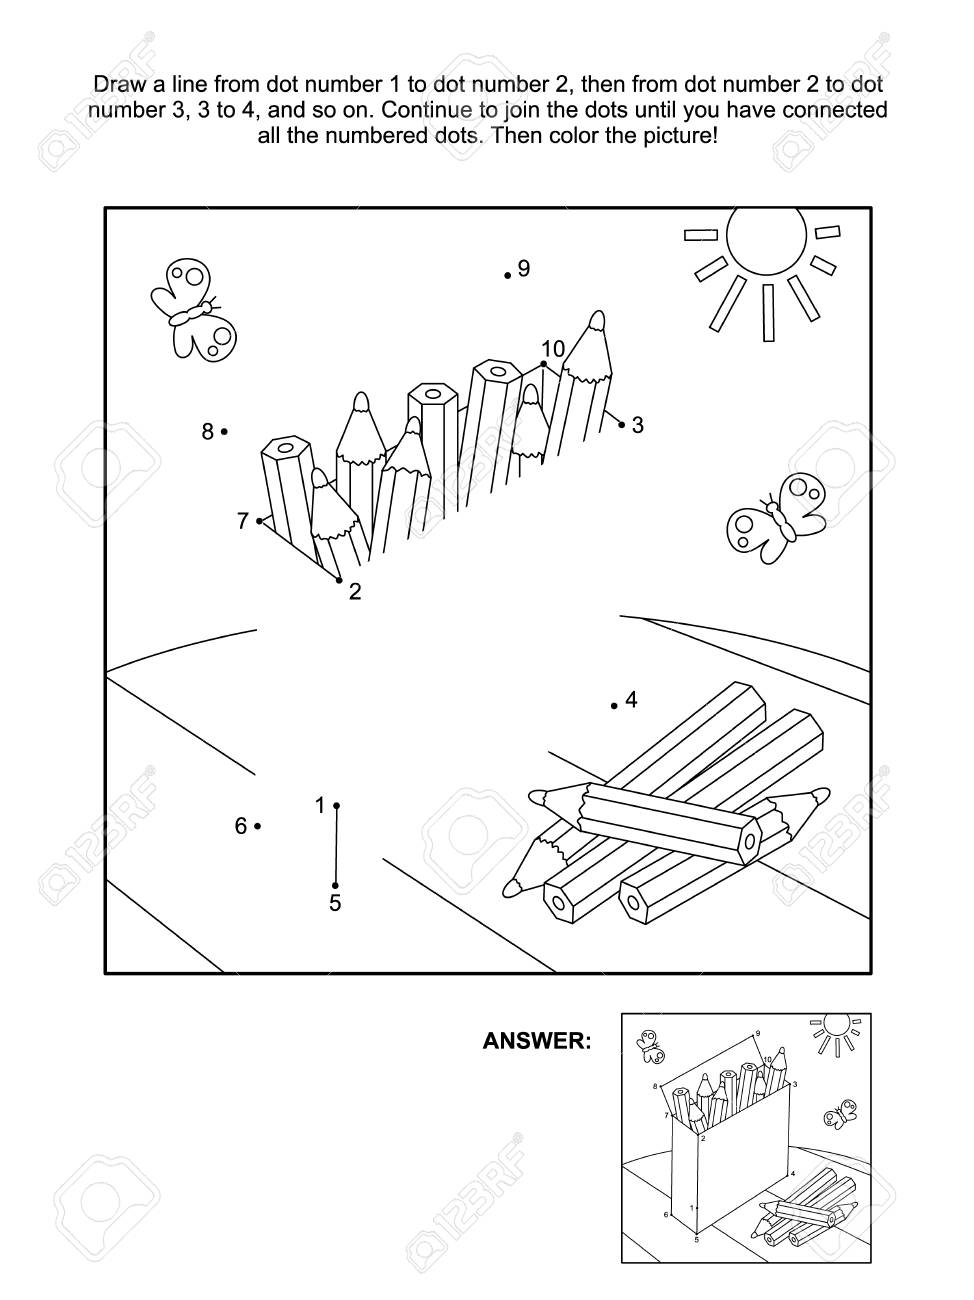 Connect The Dots Picture Puzzle And Coloring Page With Box Of ...